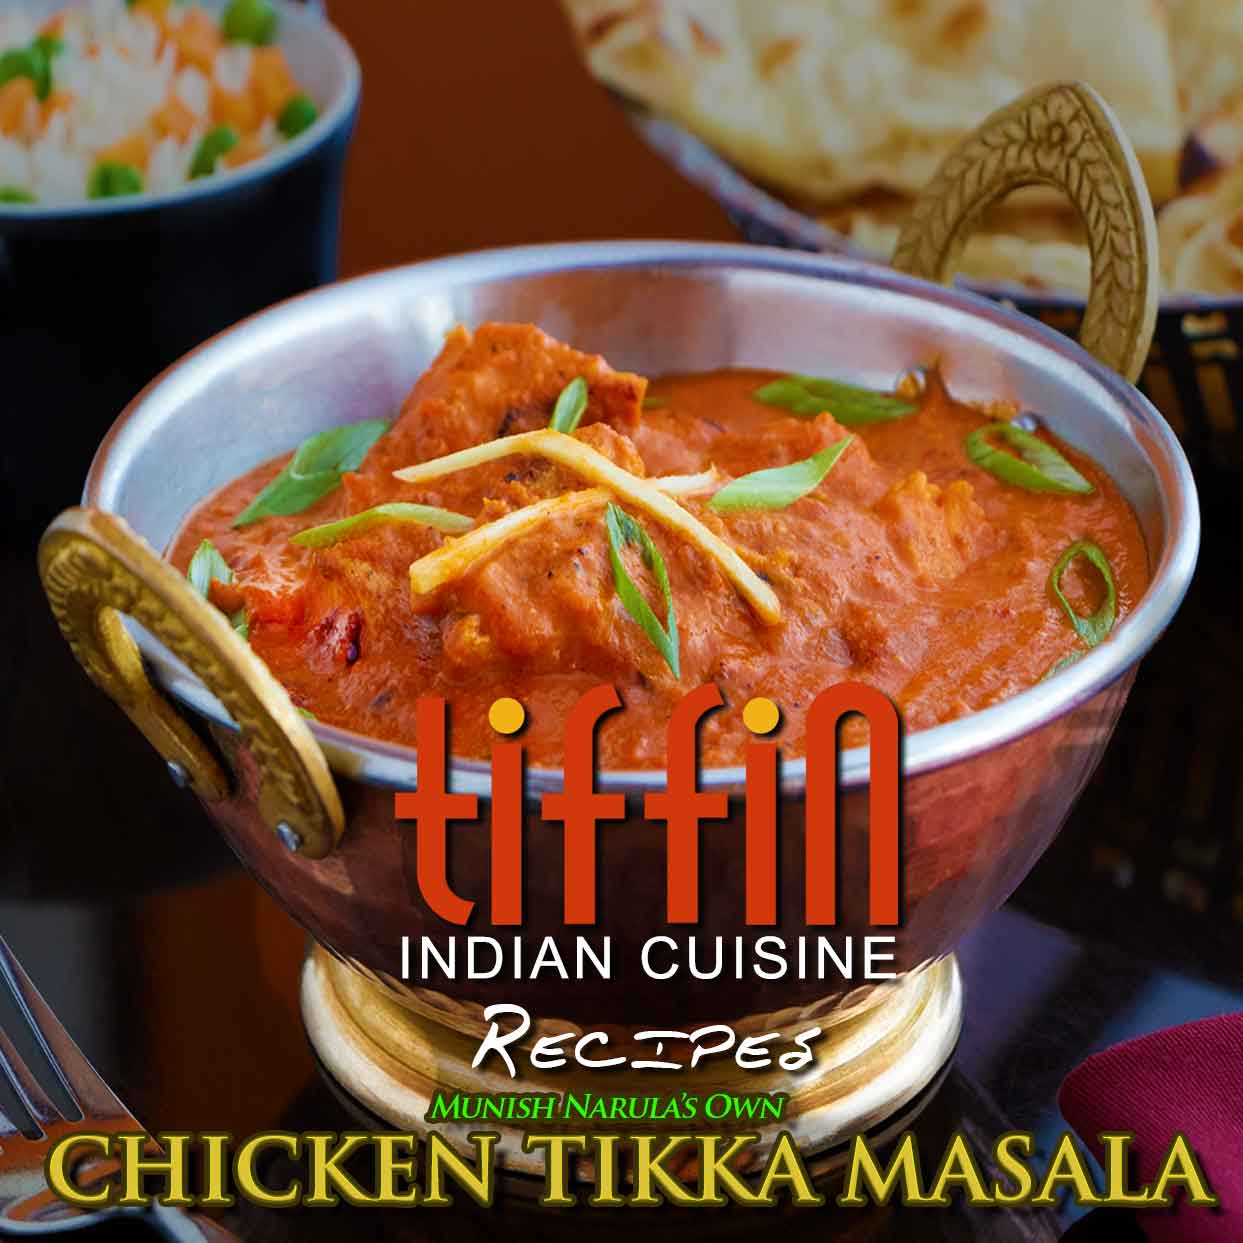 Tiffin Indian Food Delivery Cuisine Restaurant in Philadelphia, Bryn Mawr, Wynnewood, Voorhees, Cherry Hill, Mt Airy, South Philadelphia, East Hanover NJ